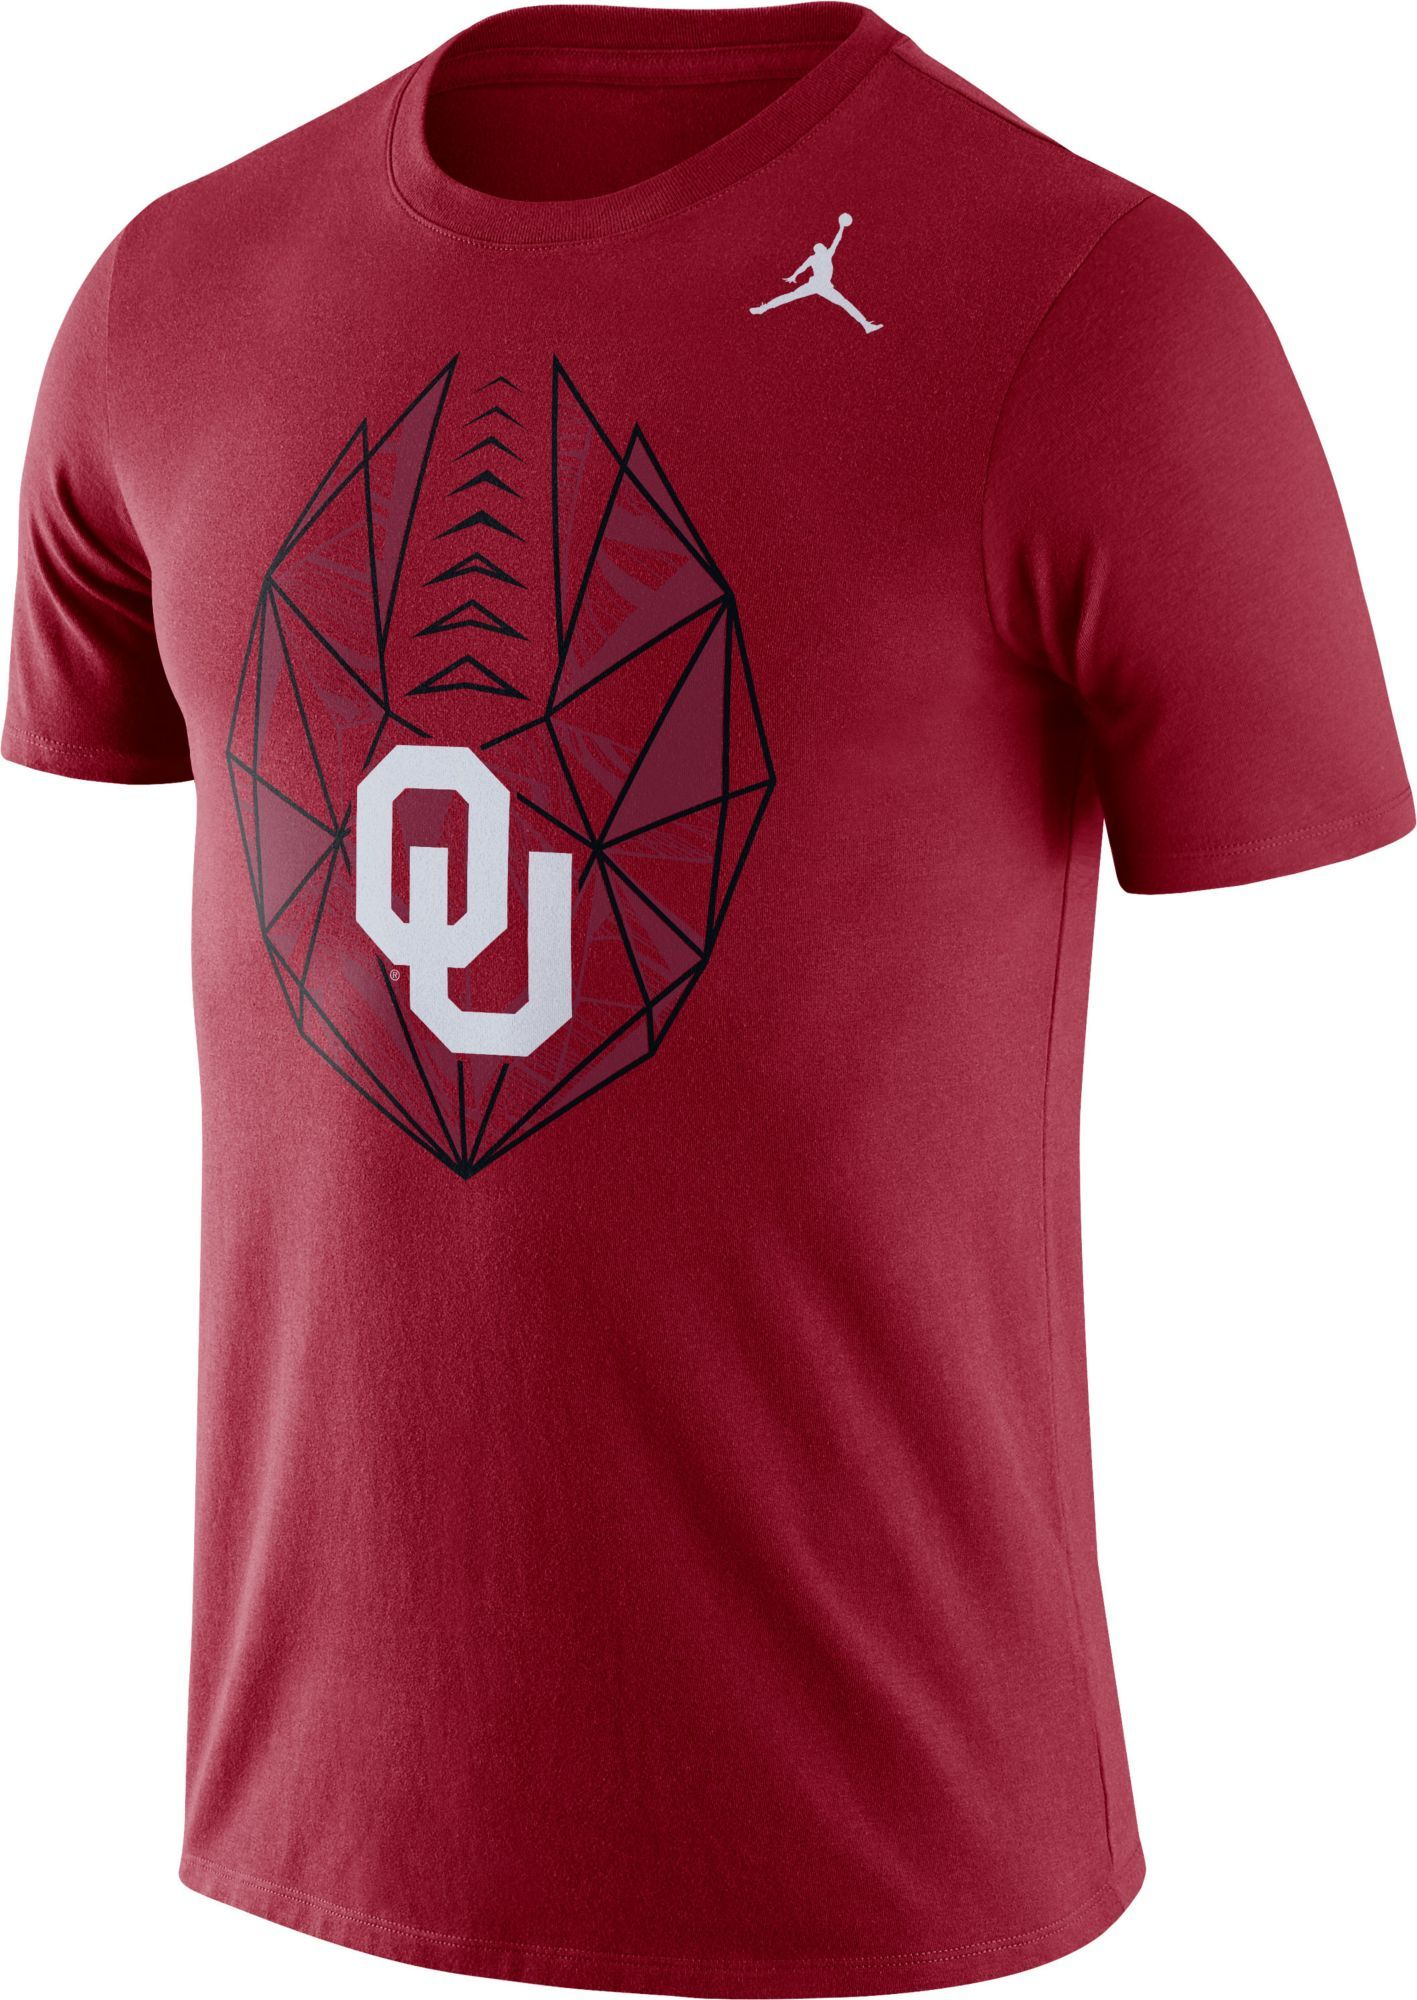 3101c94e654f Jordan Men s Oklahoma Sooners Crimson Dri-FIT Football Icon T-Shirt ...